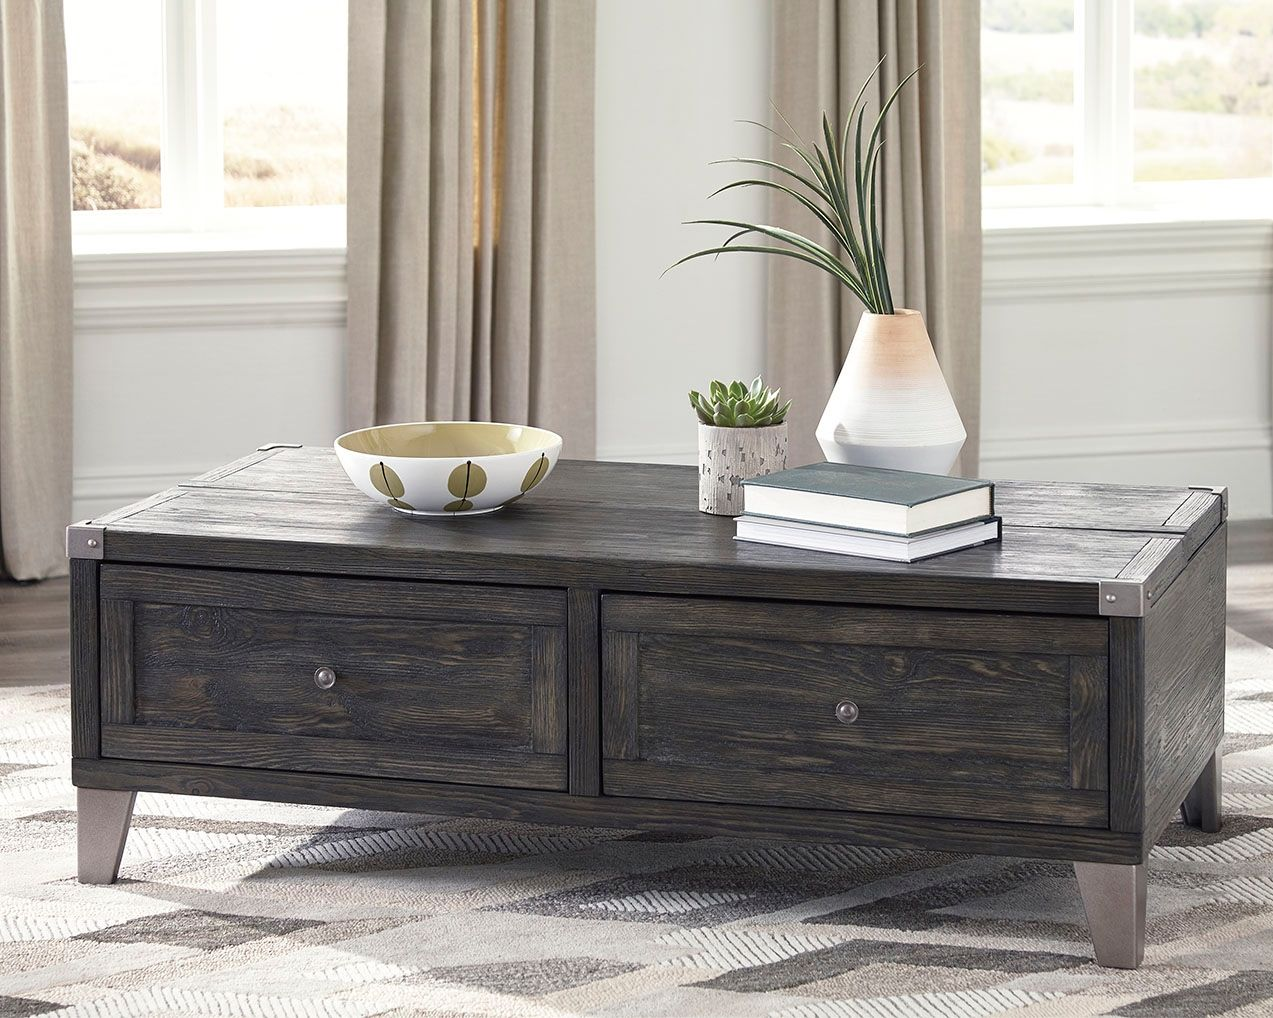 Todoe Coffee Table With Lift Top Ashley Furniture Homestore In 2021 Coffee Table Lift Top Coffee Table Coffee Table With Storage [ 1018 x 1273 Pixel ]